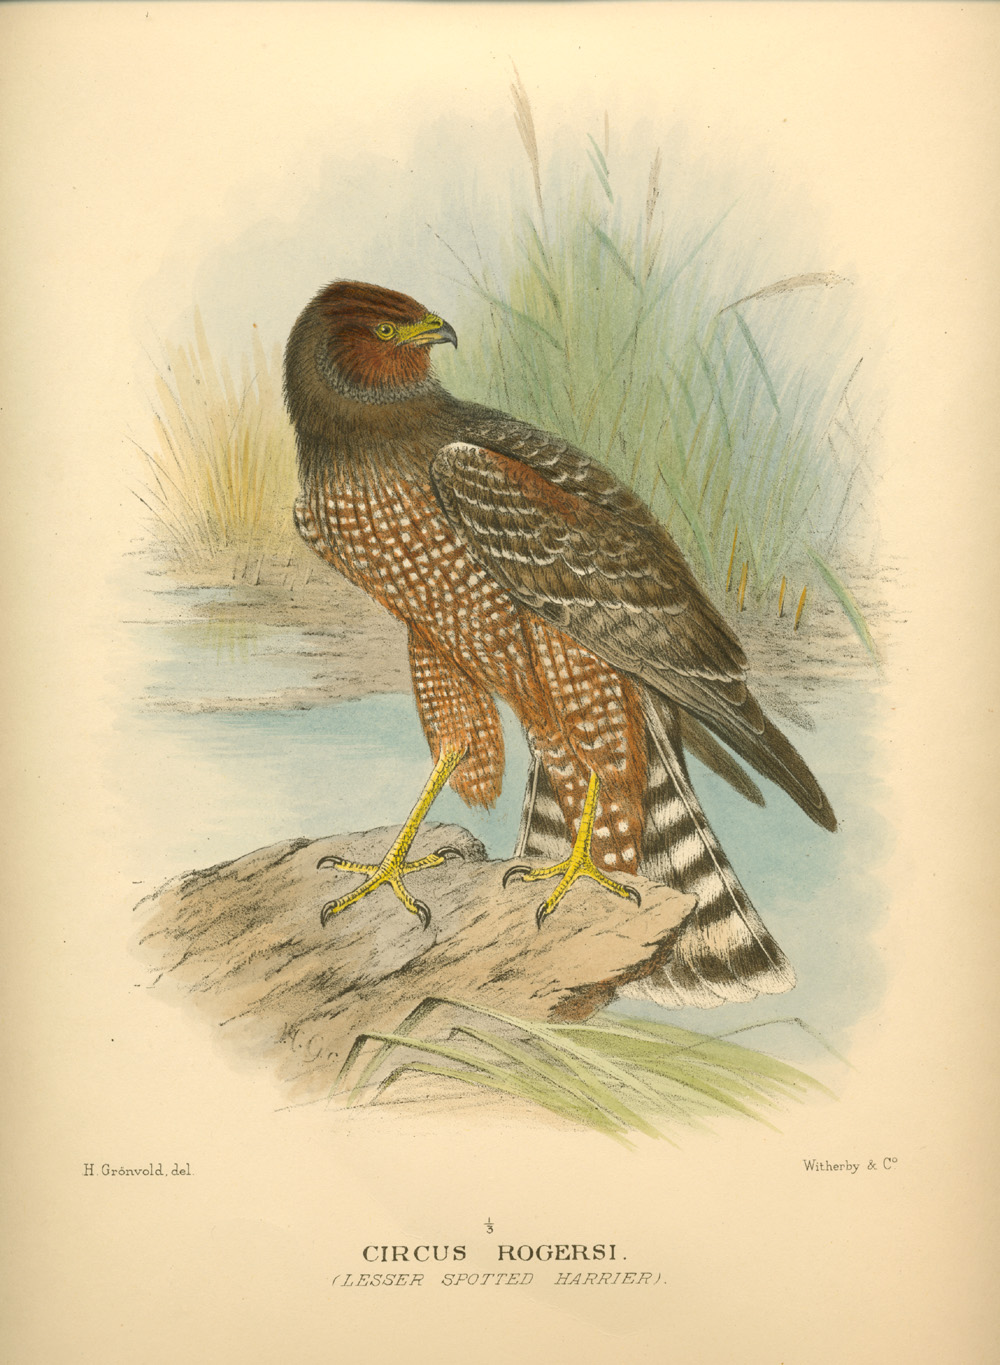 Lesser Spotted Harrier, Circus Rogersi lithograph. Mathews c1910-27.